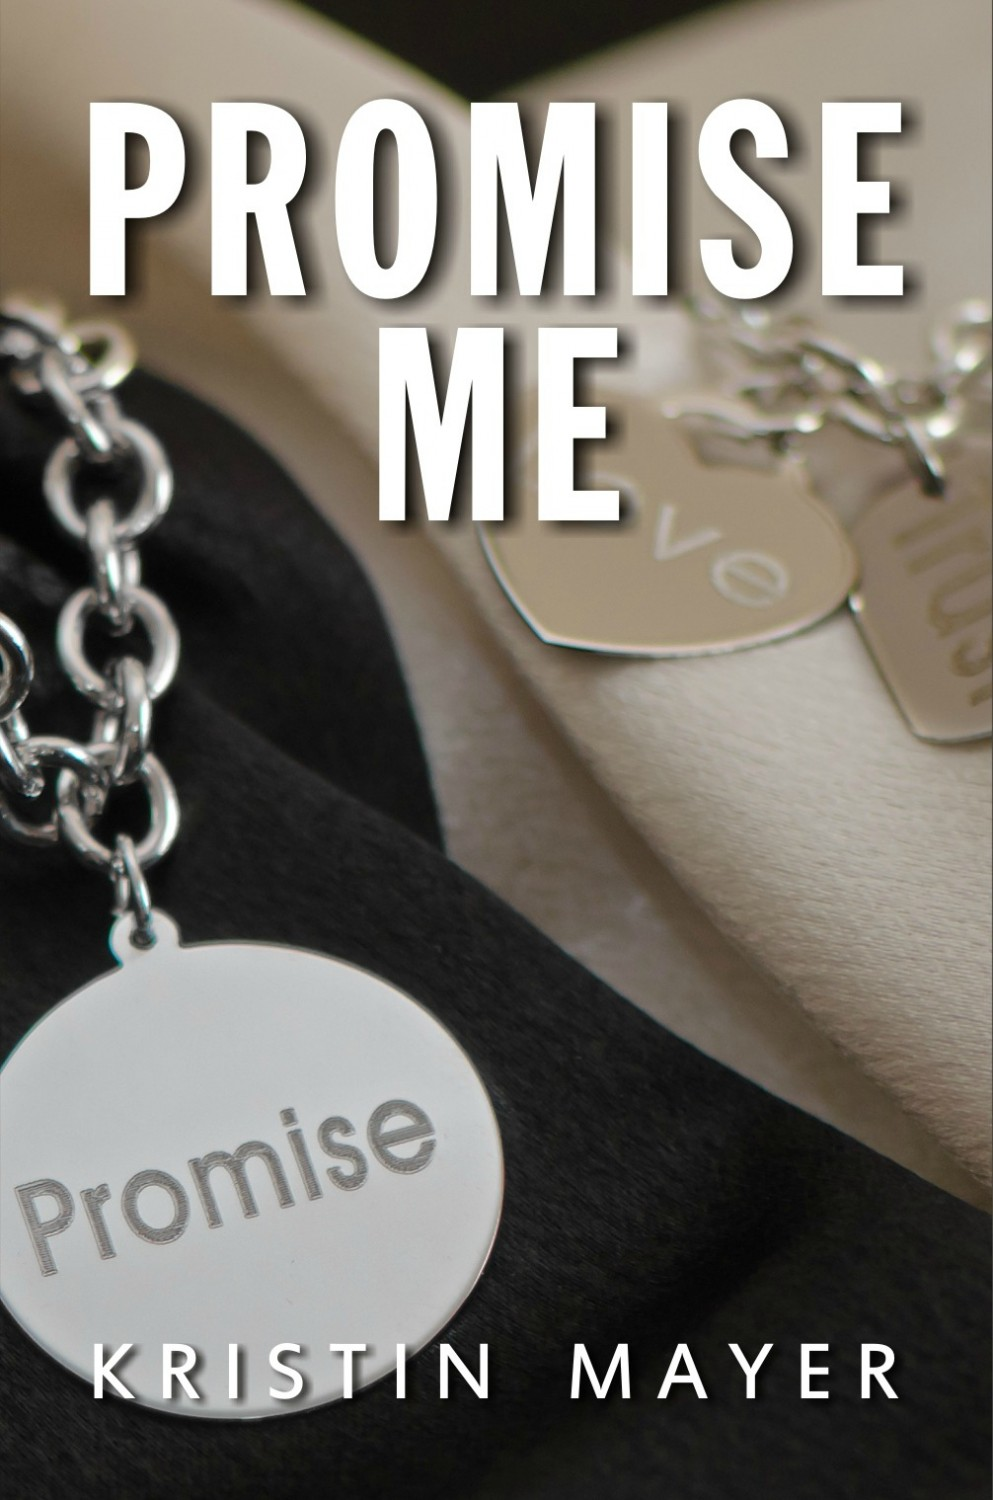 promise me book cover_front_fnl